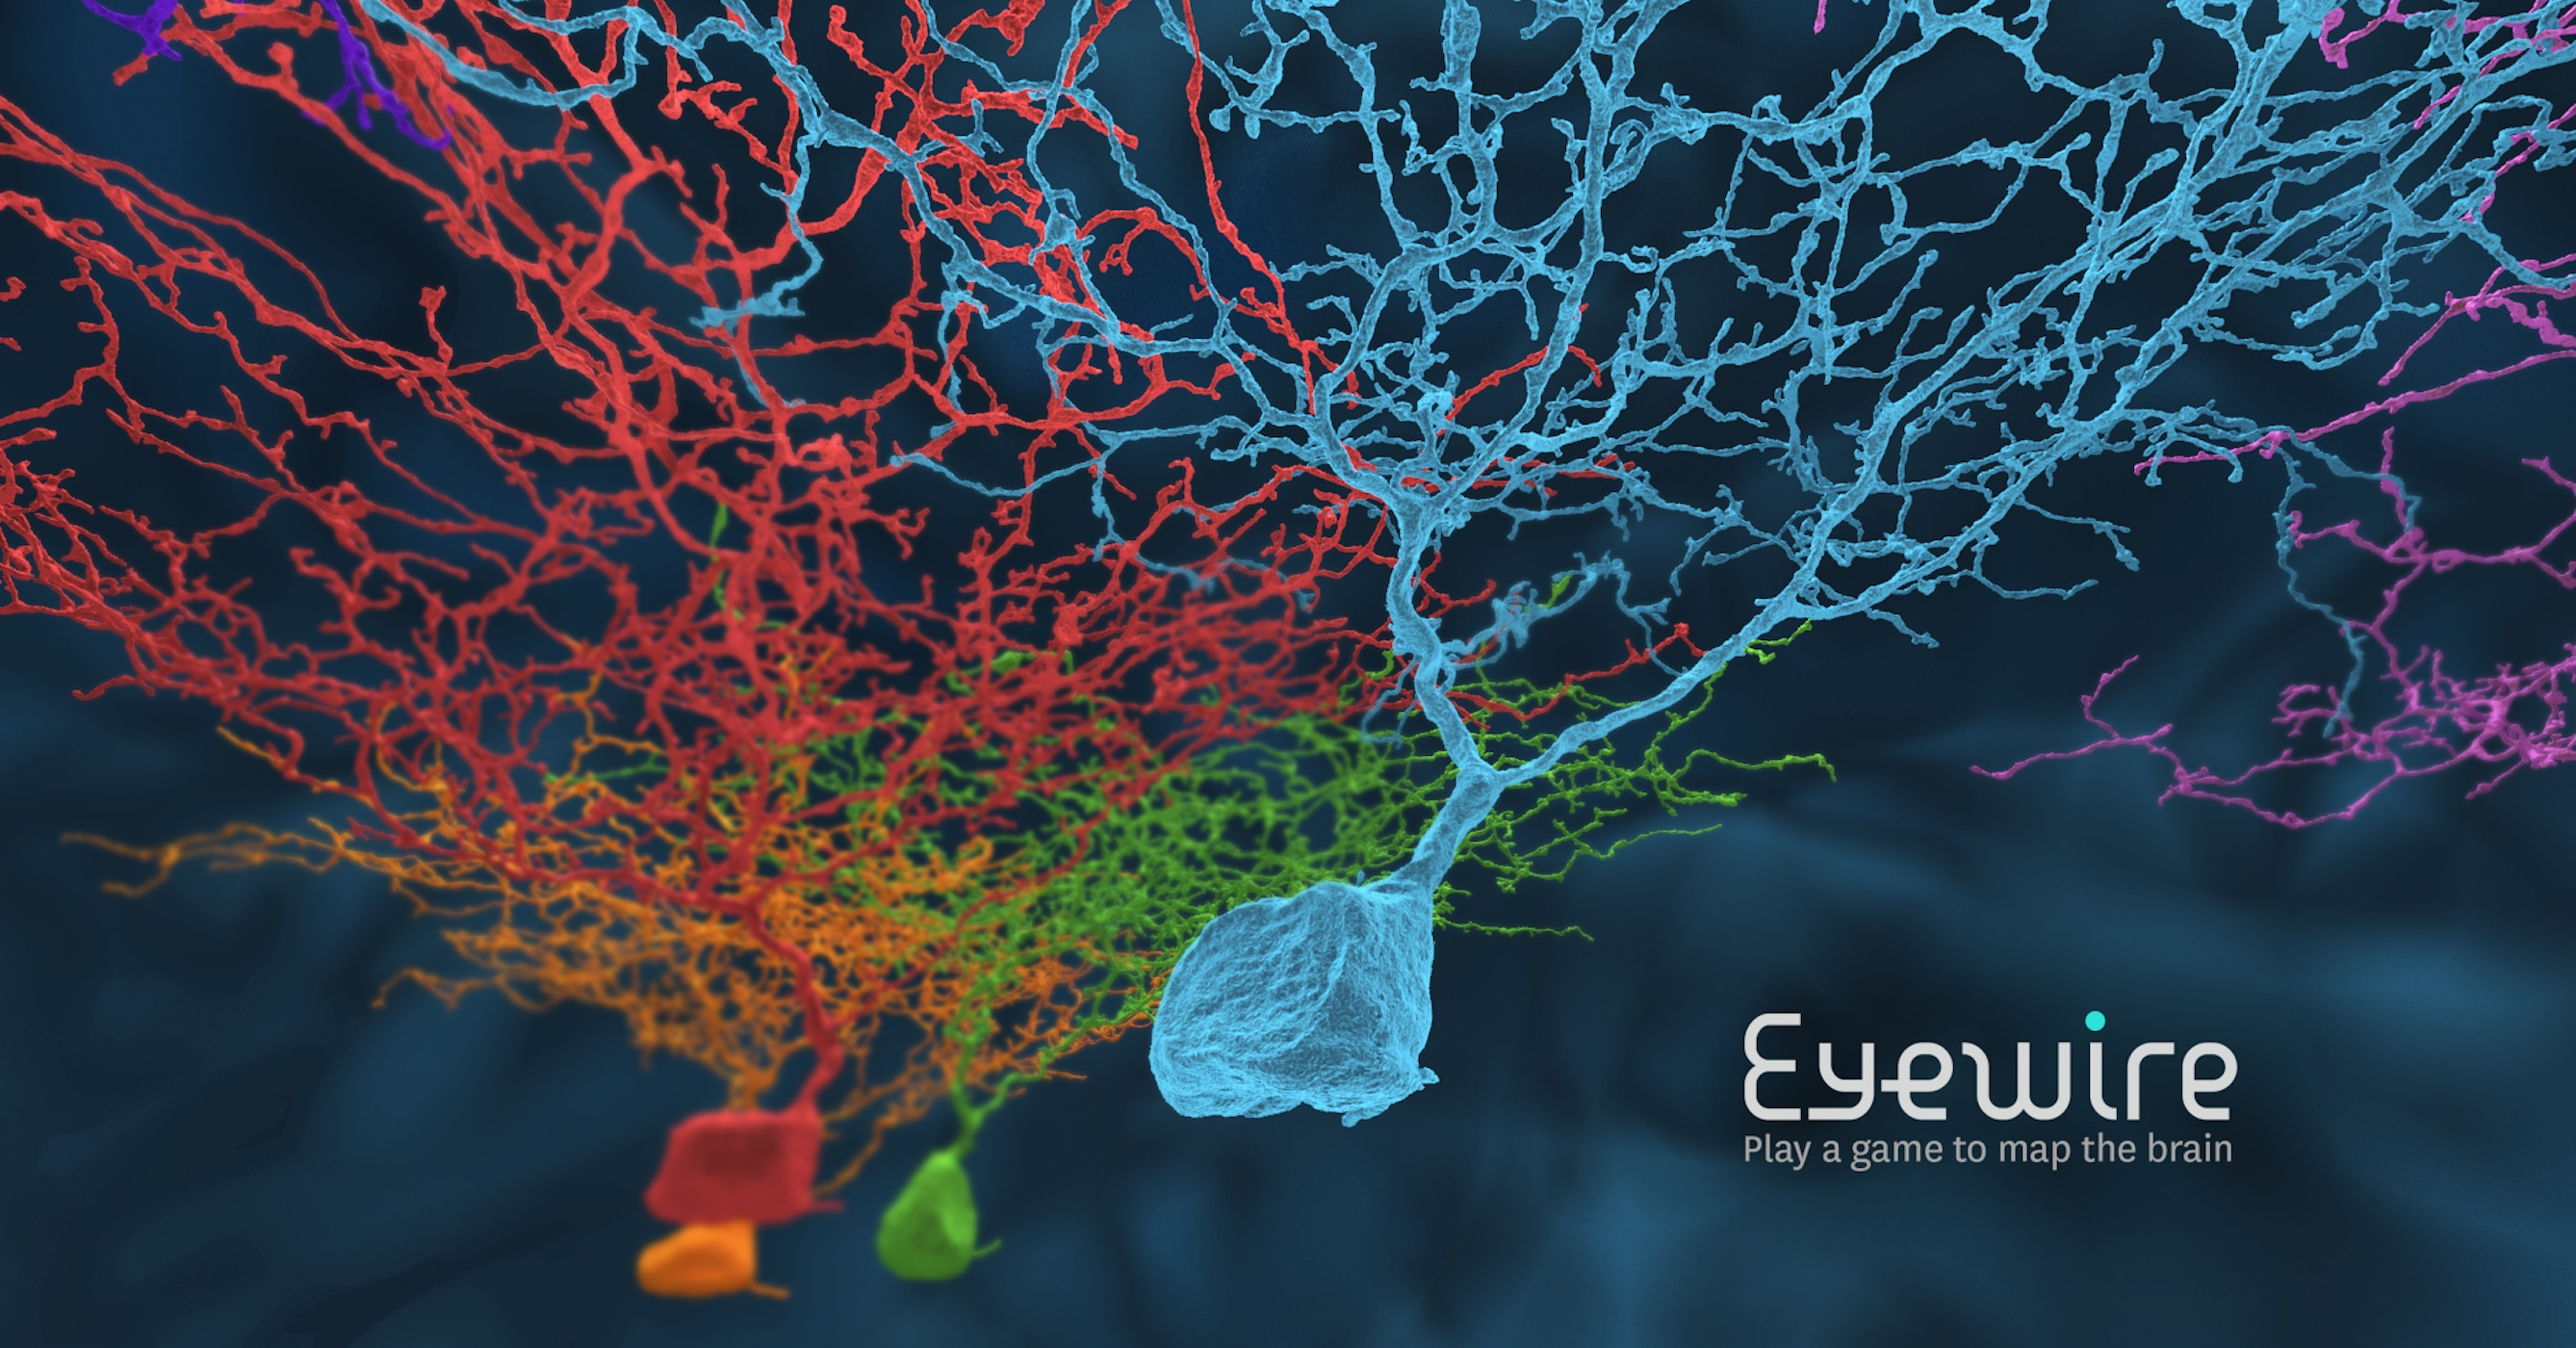 From data-driven illustrations to gamified neuron mapping